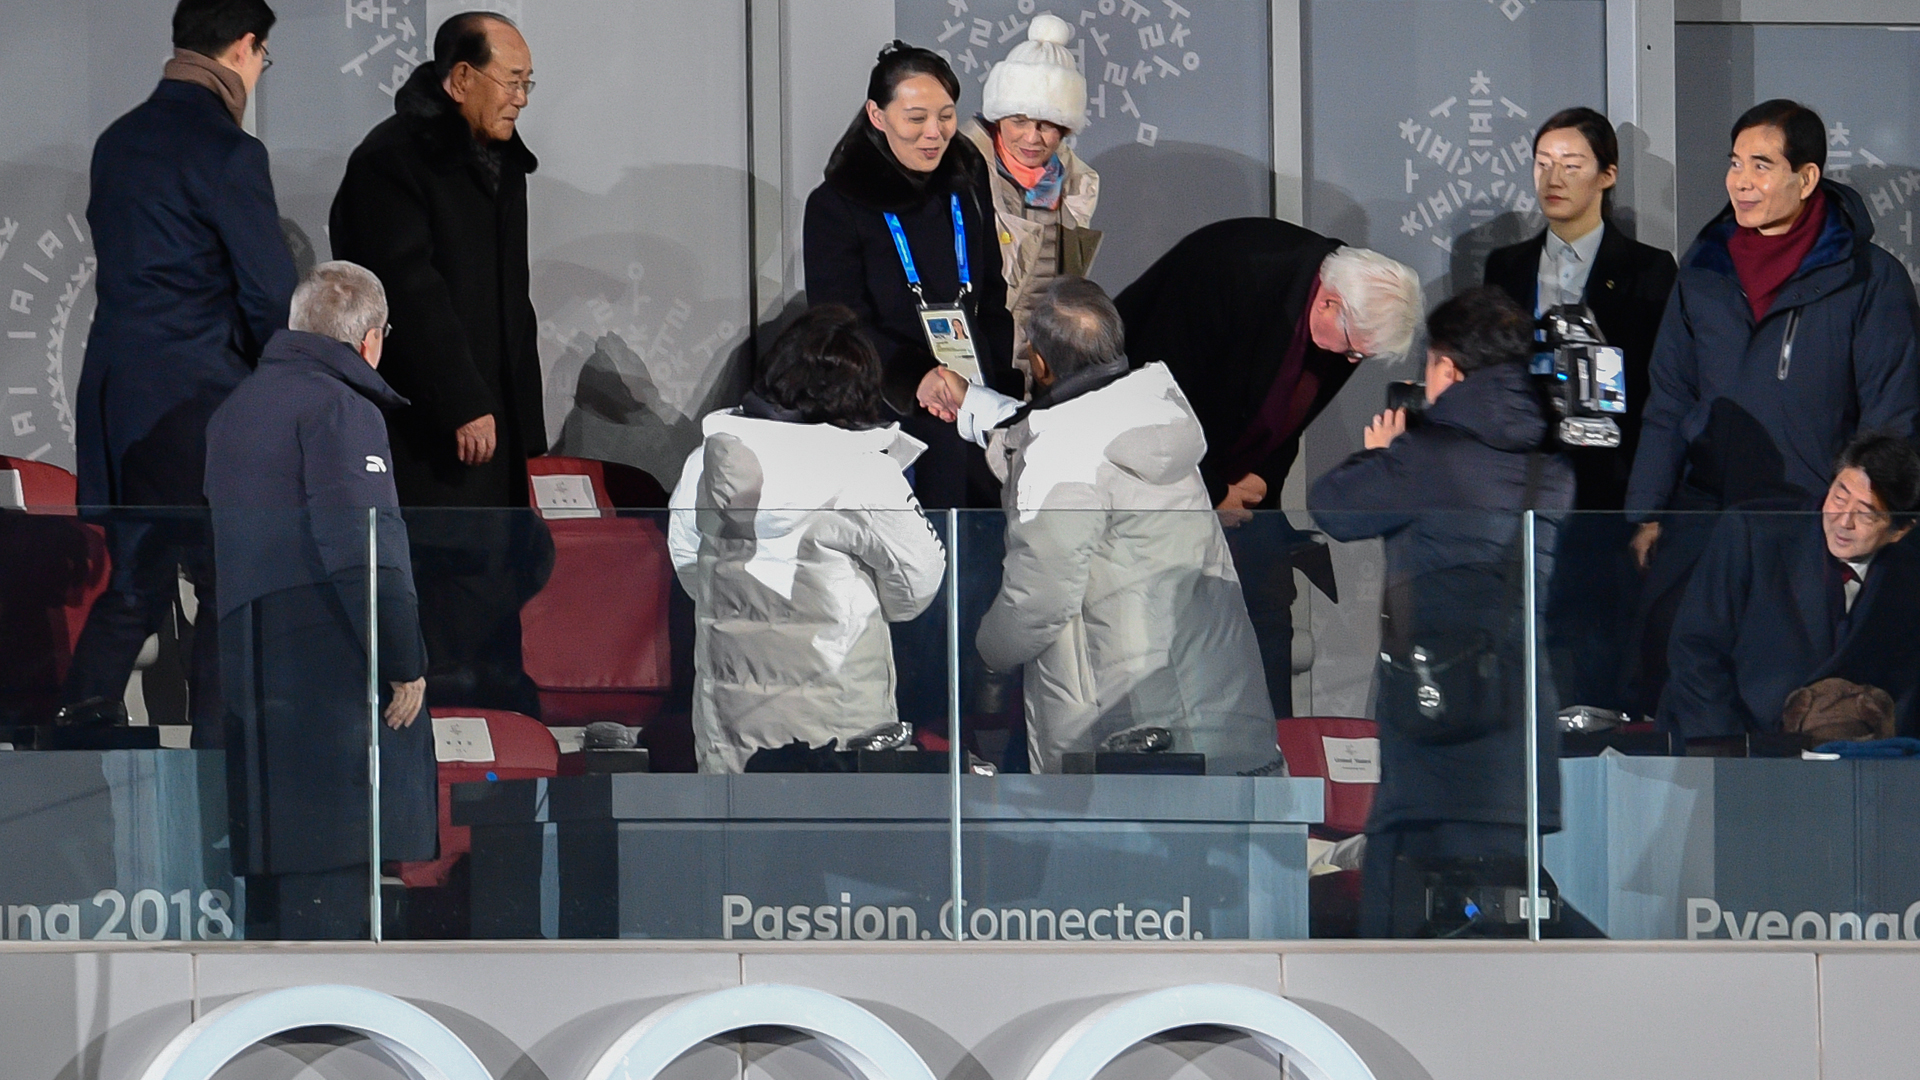 North Korea's Kim Jong Uns sister Kim Yo Jong (C) shakes hand with South Korea's President Moon Jae-in during the opening ceremony of the Pyeongchang 2018 Winter Olympic Games on February 9, 2018. (Credit: MARTIN BUREAU/AFP/Getty Images)